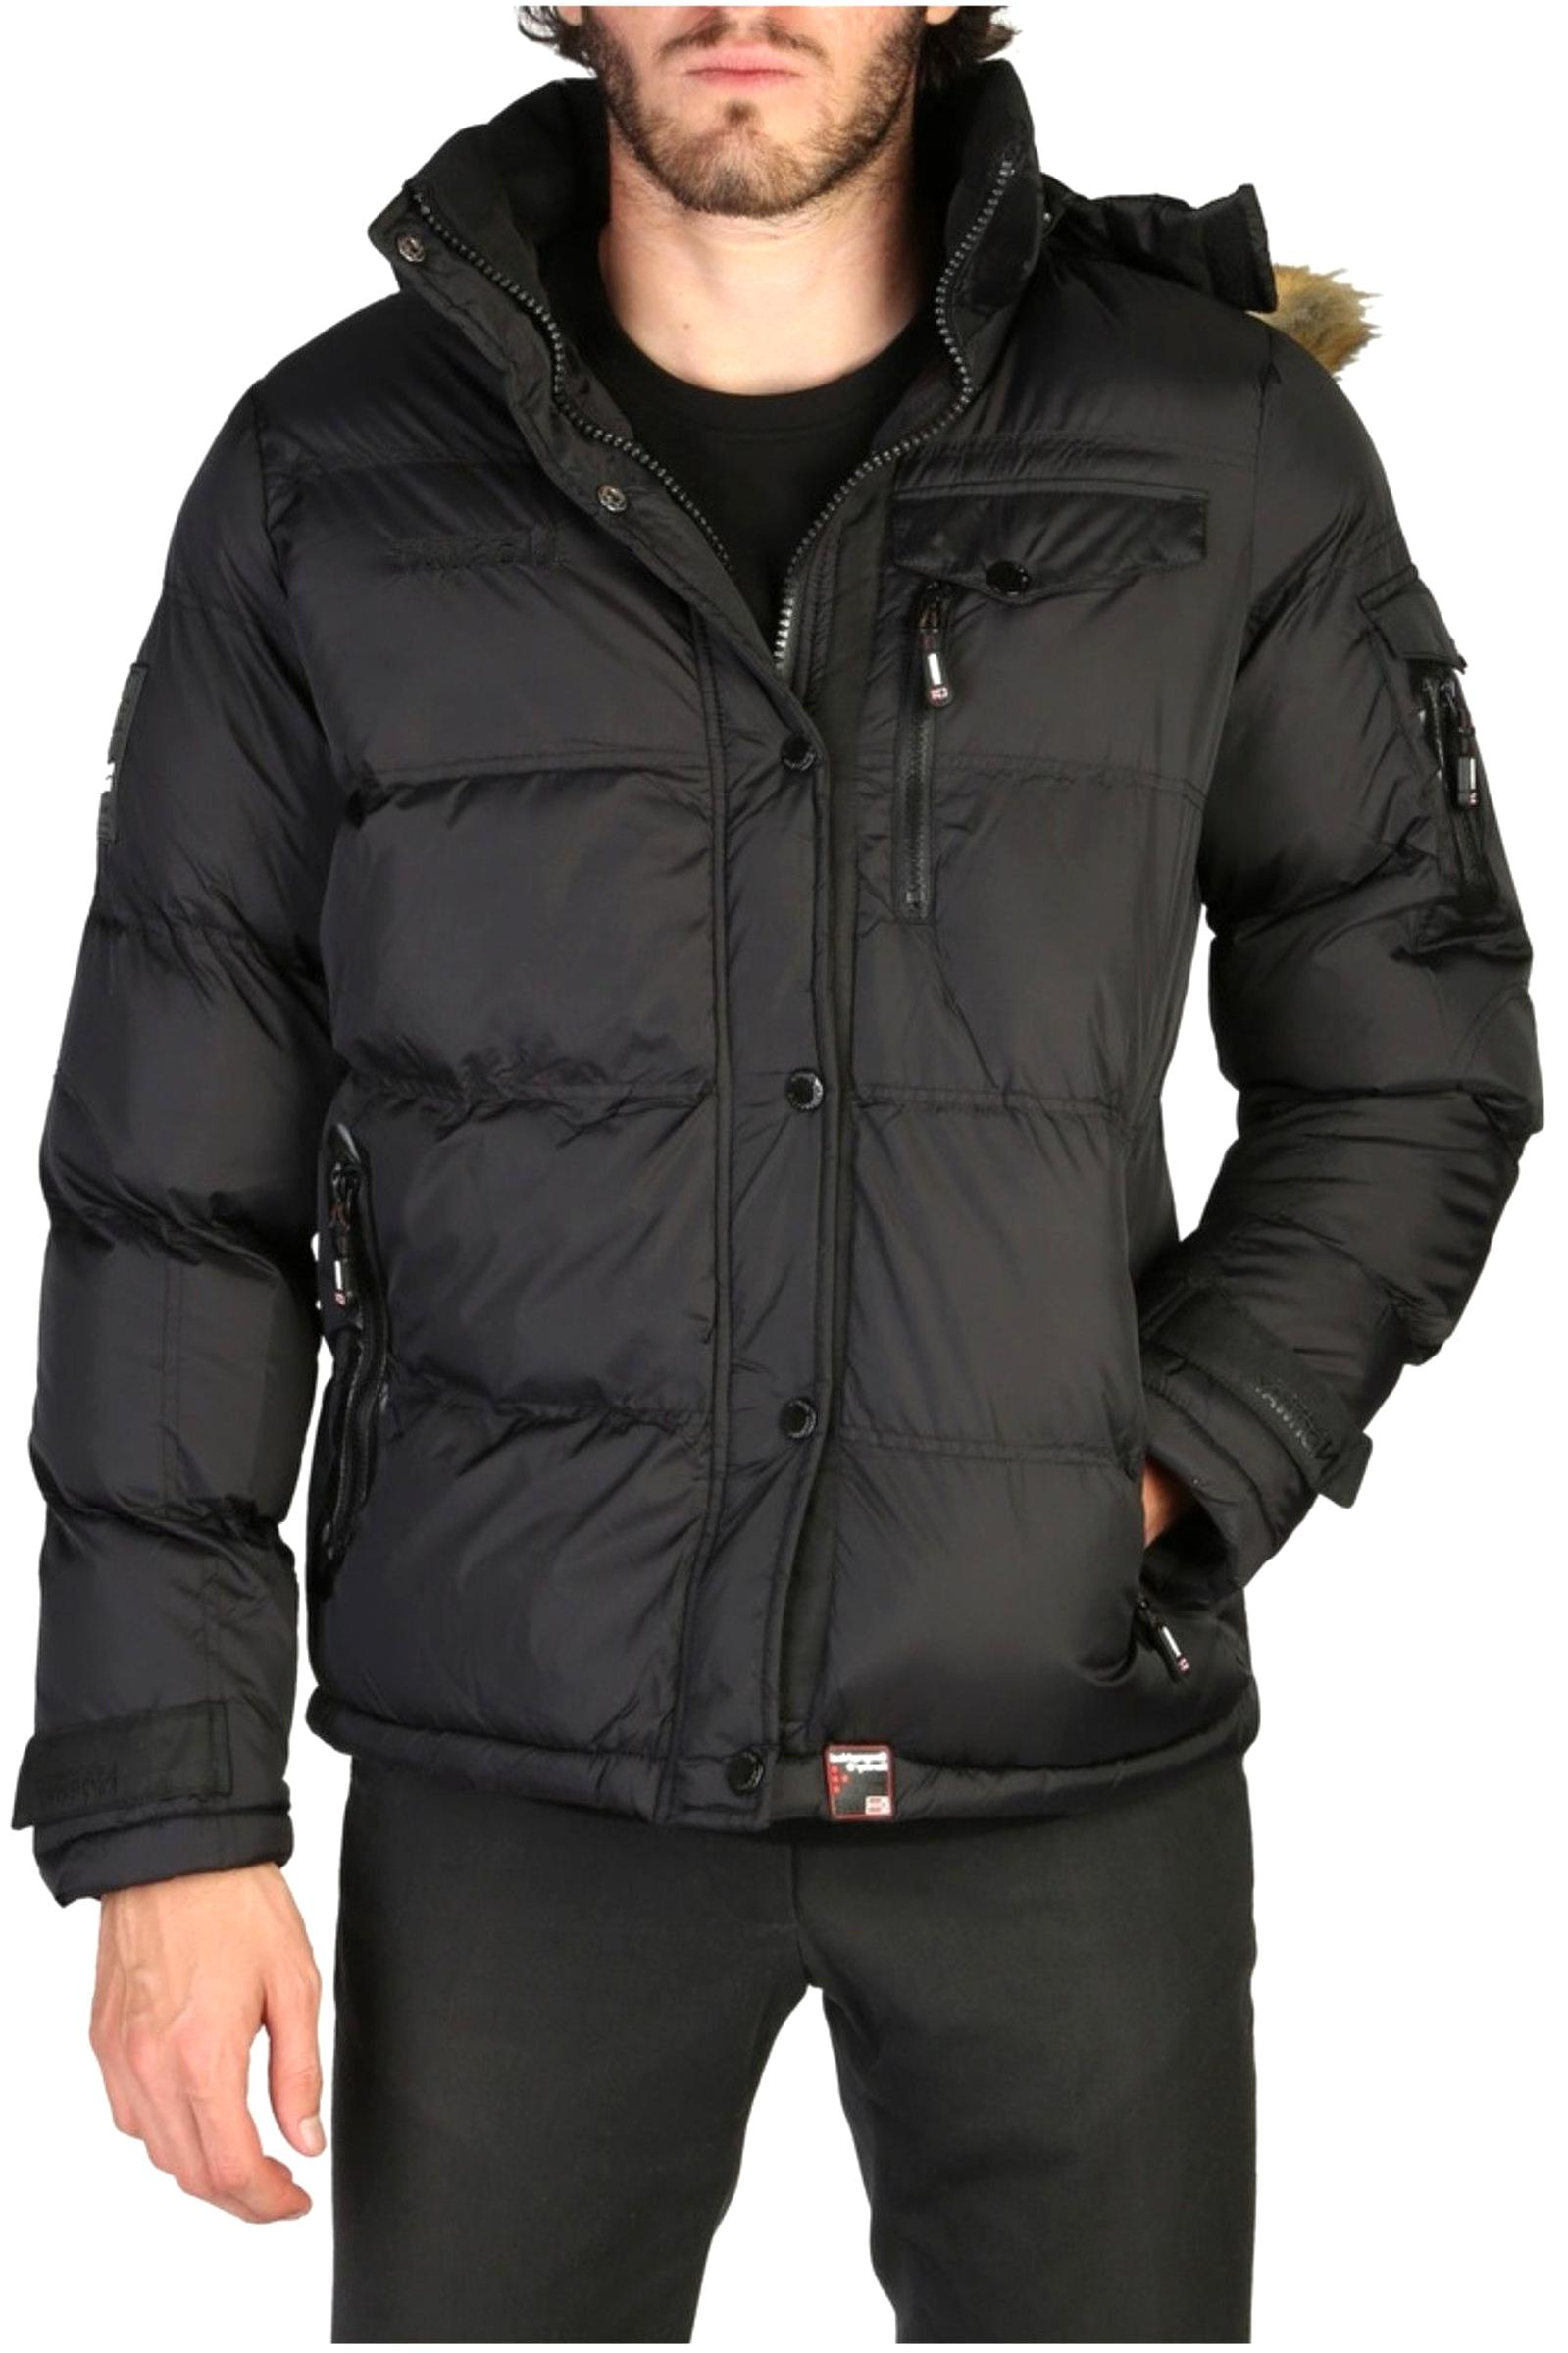 geographical norway xxxl d'occasion